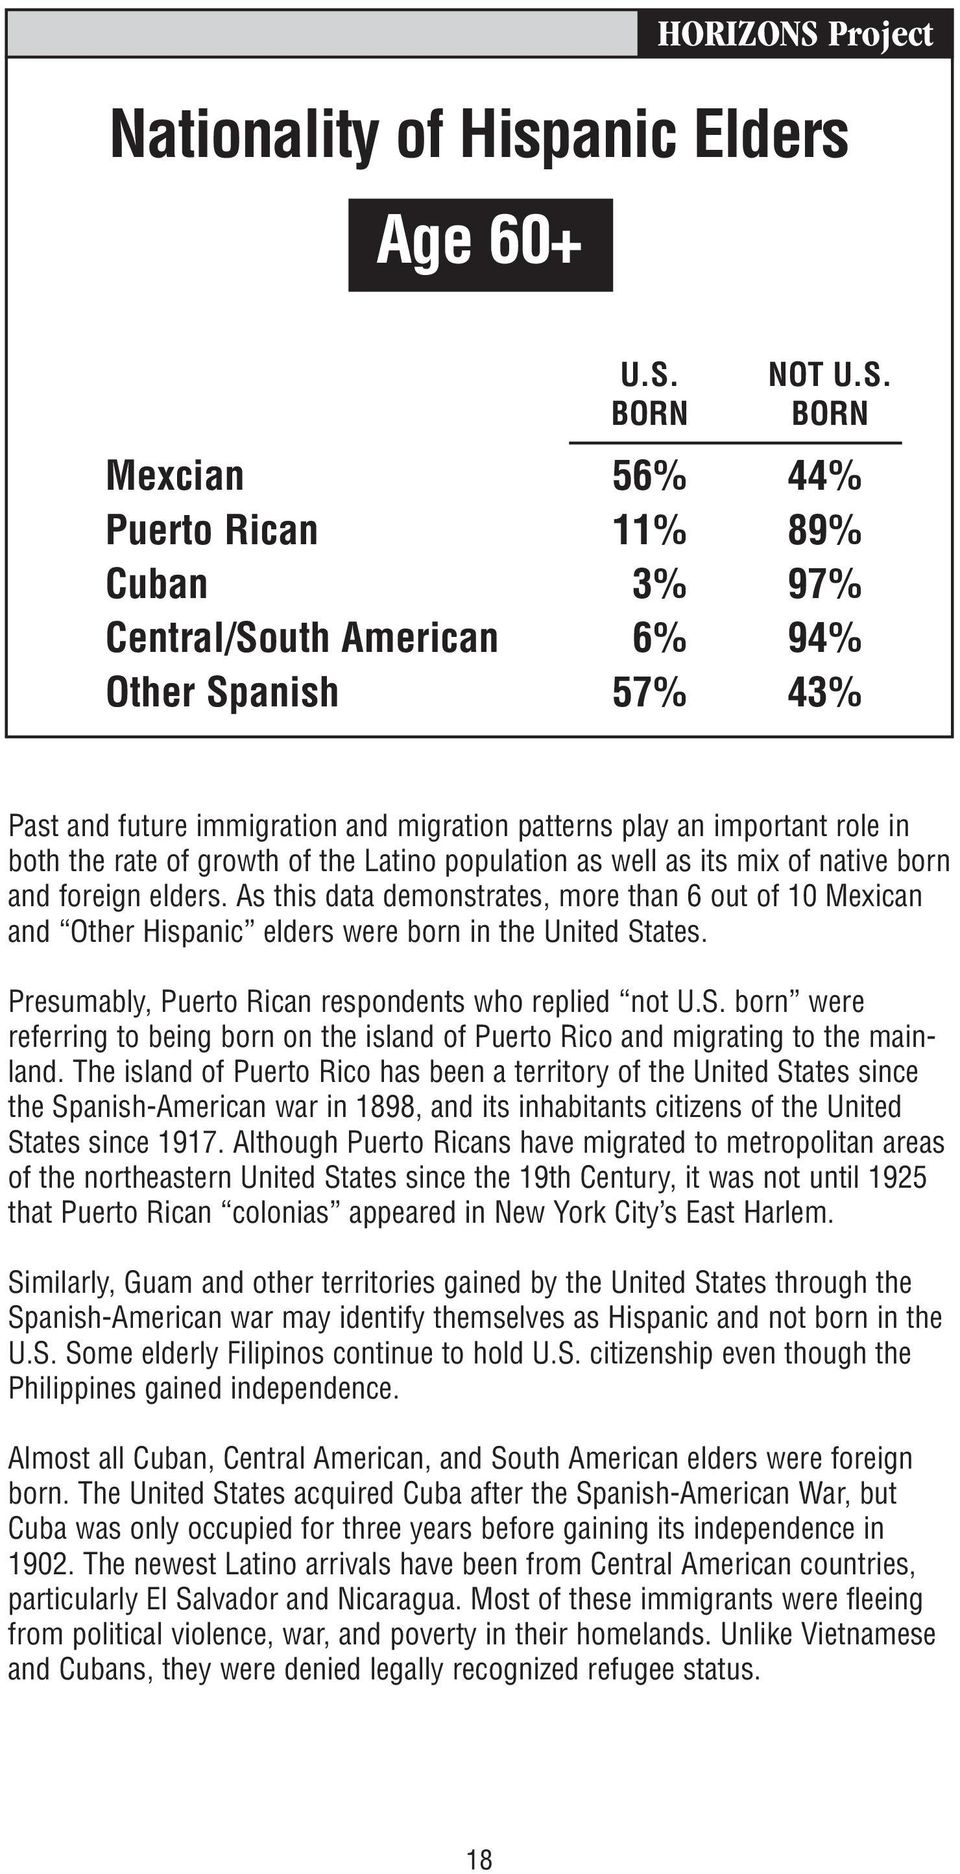 BORN Mexcian 56% 44% Puerto Rican 11% 89% Cuban 3% 97% Central/South American 6% 94% Other Spanish 57% 43% Past and future immigration and migration patterns play an important role in both the rate